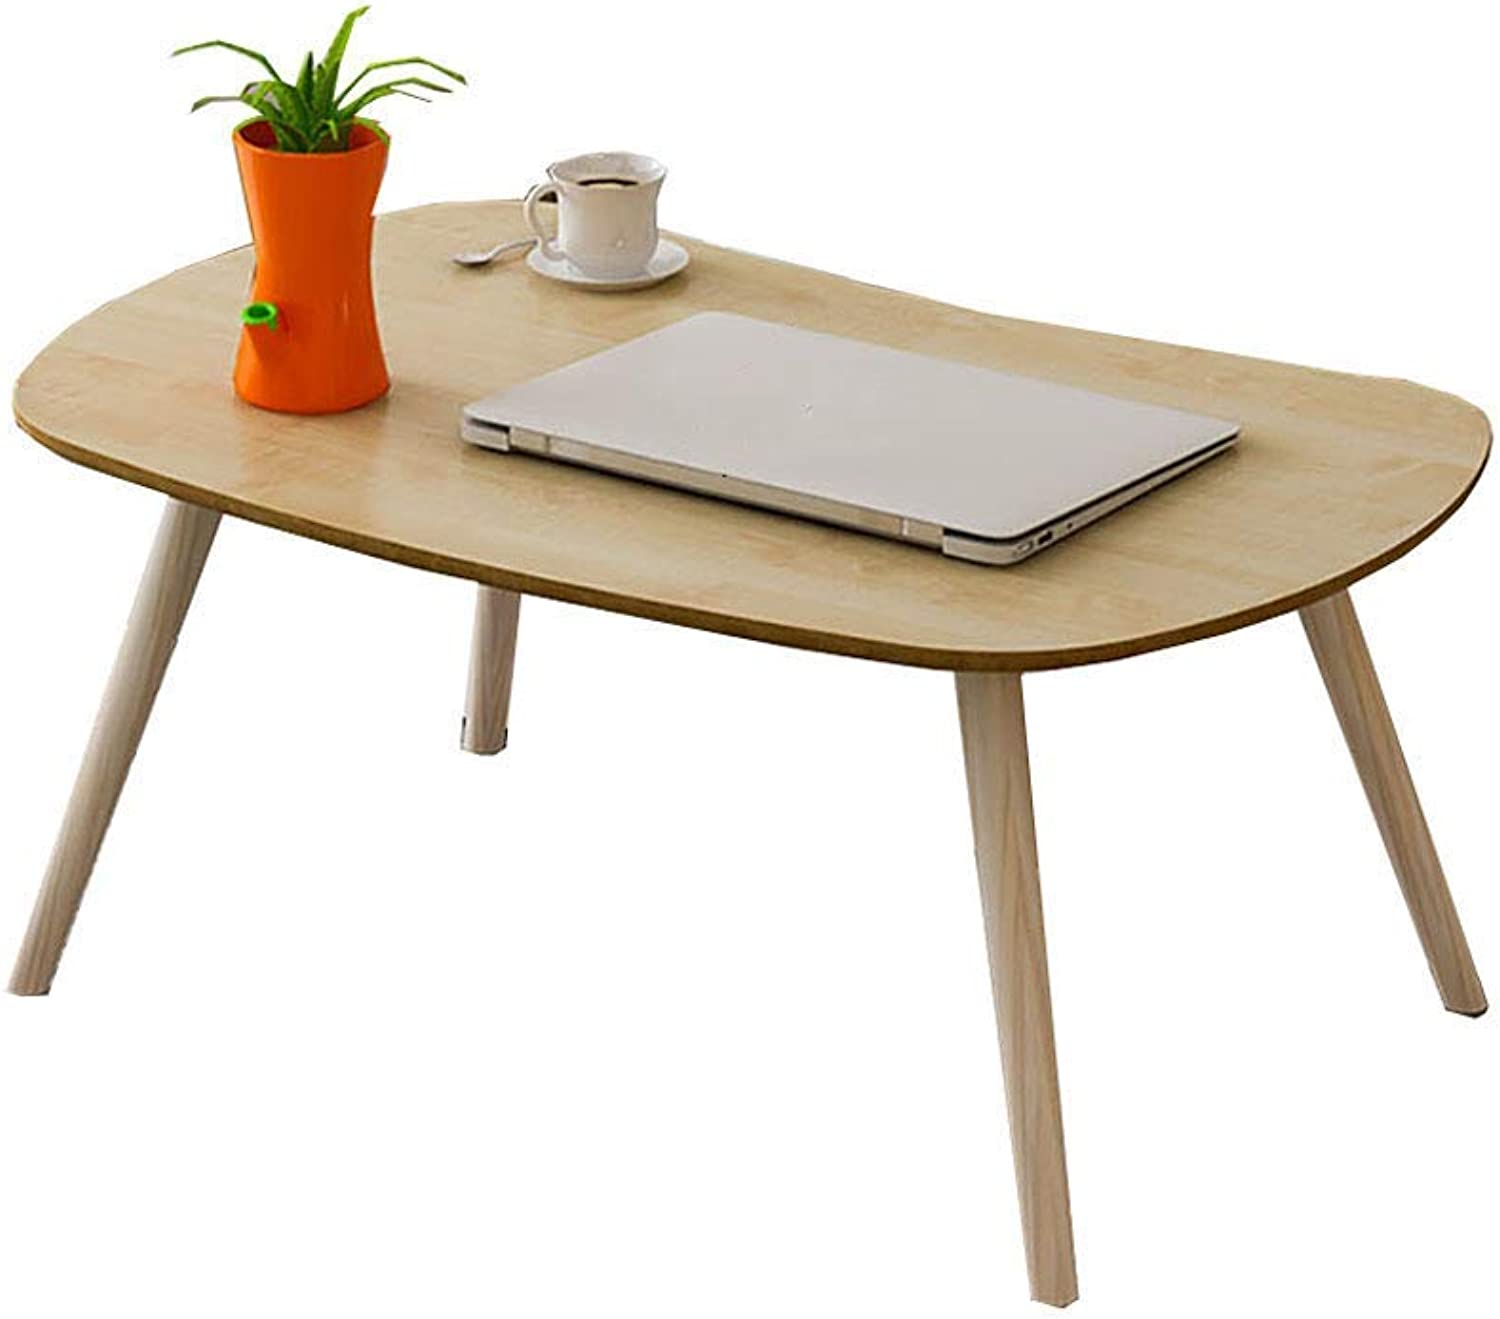 TJTG End Tables Laptop Desk Bed with Bay Window Drinking Tea Table Small Table Student Lazy Table Simple Desk Solid Wood Legs Home Office Desk